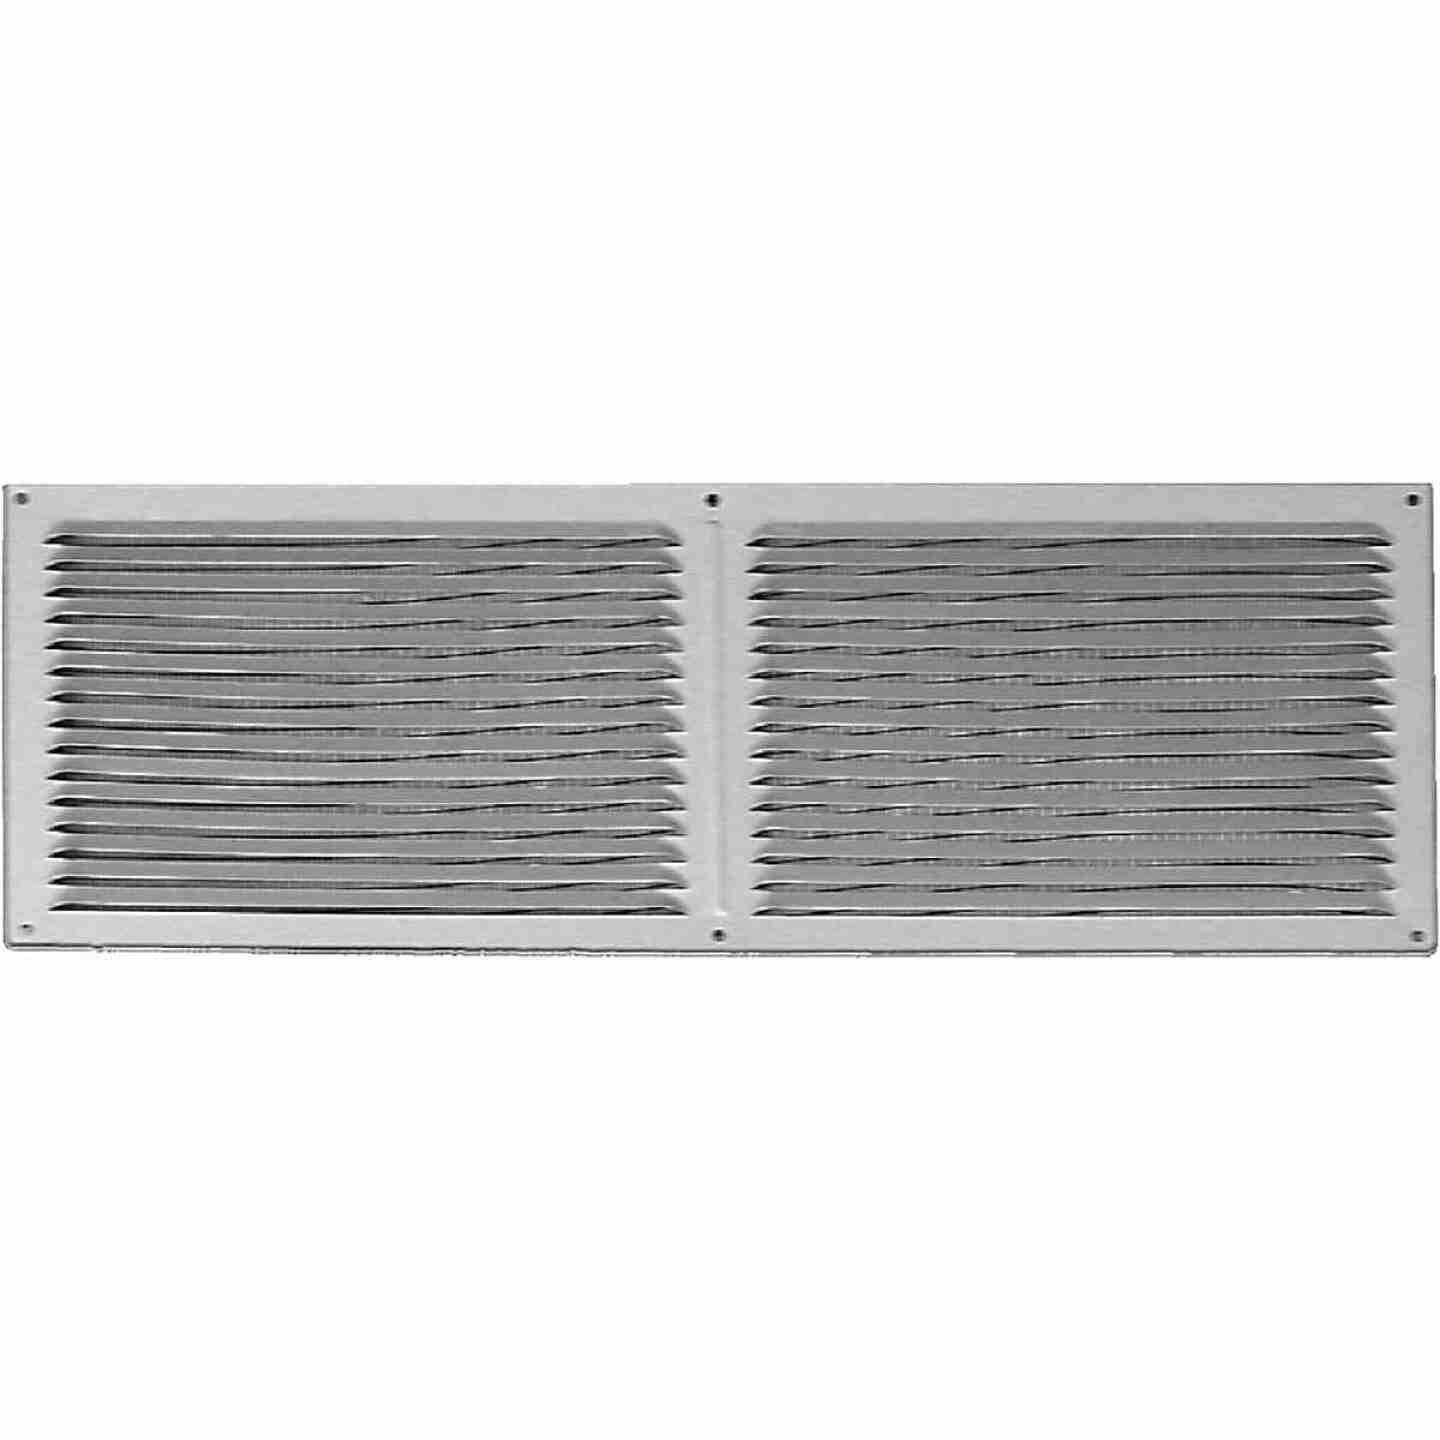 NorWesco 16 In. x 6 In. Galvanized Soffit Ventilator Image 1